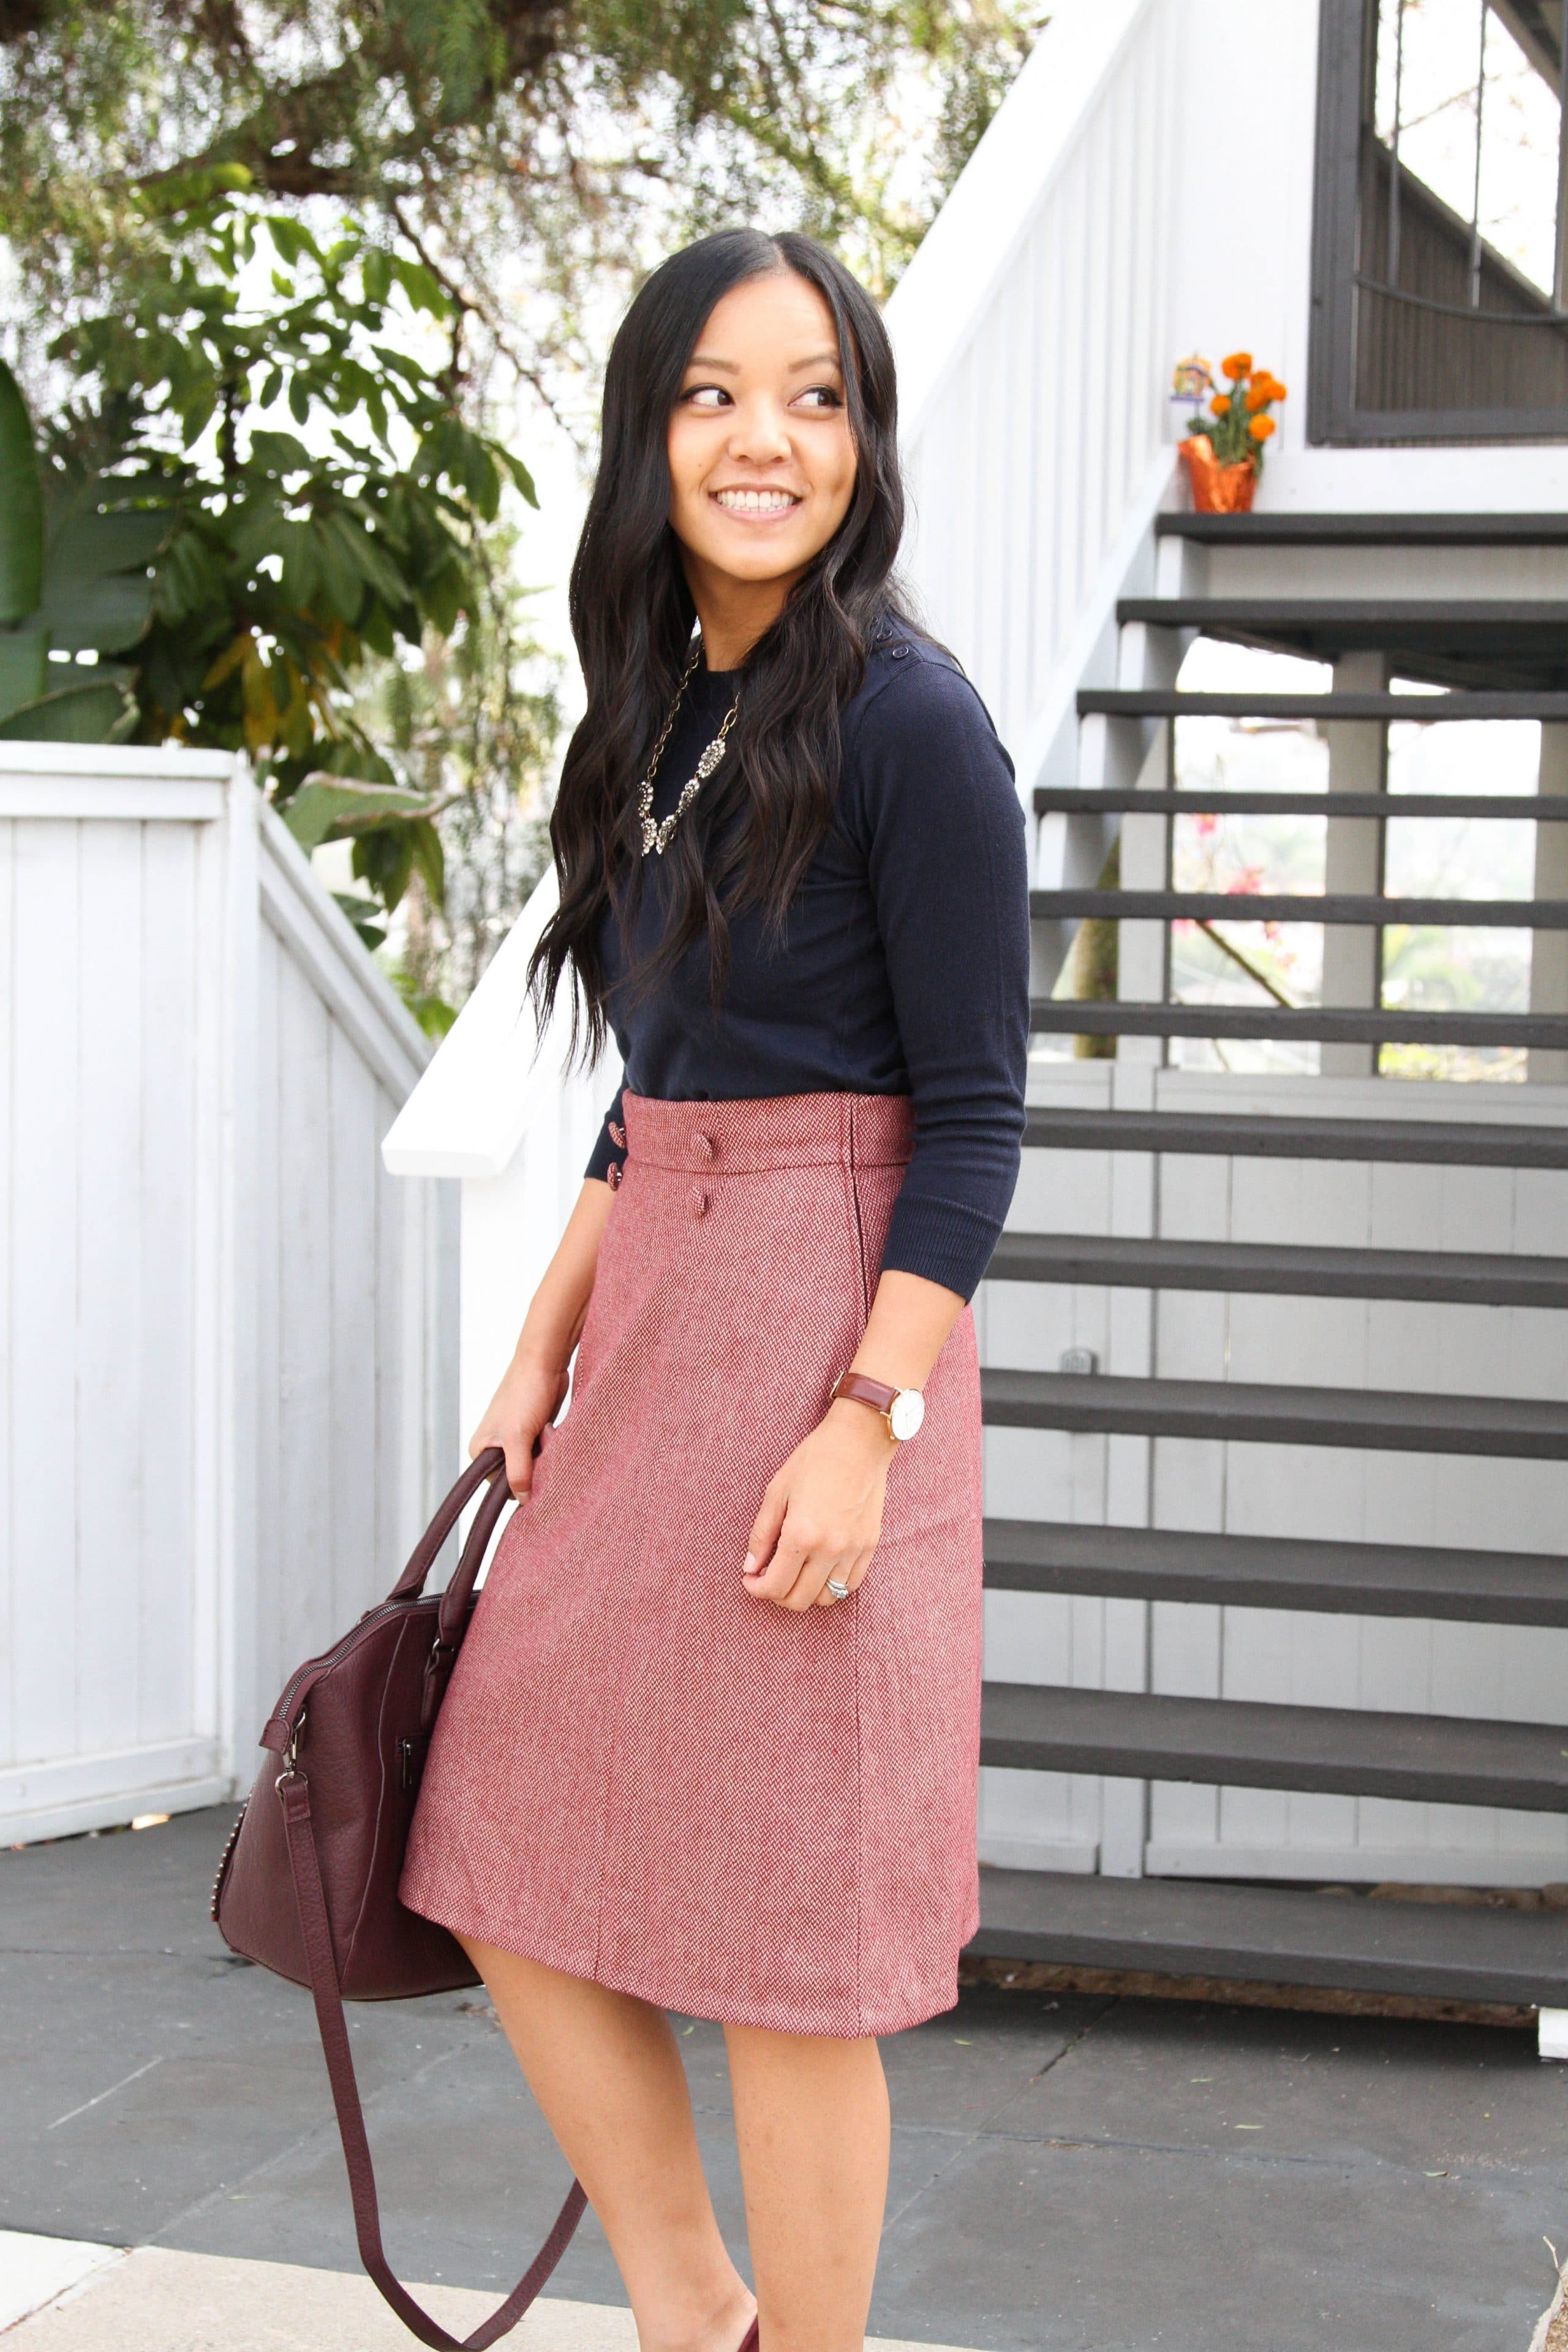 Navy Sweater + High waist Skirt + Wine Colored Bag + Statement Necklace